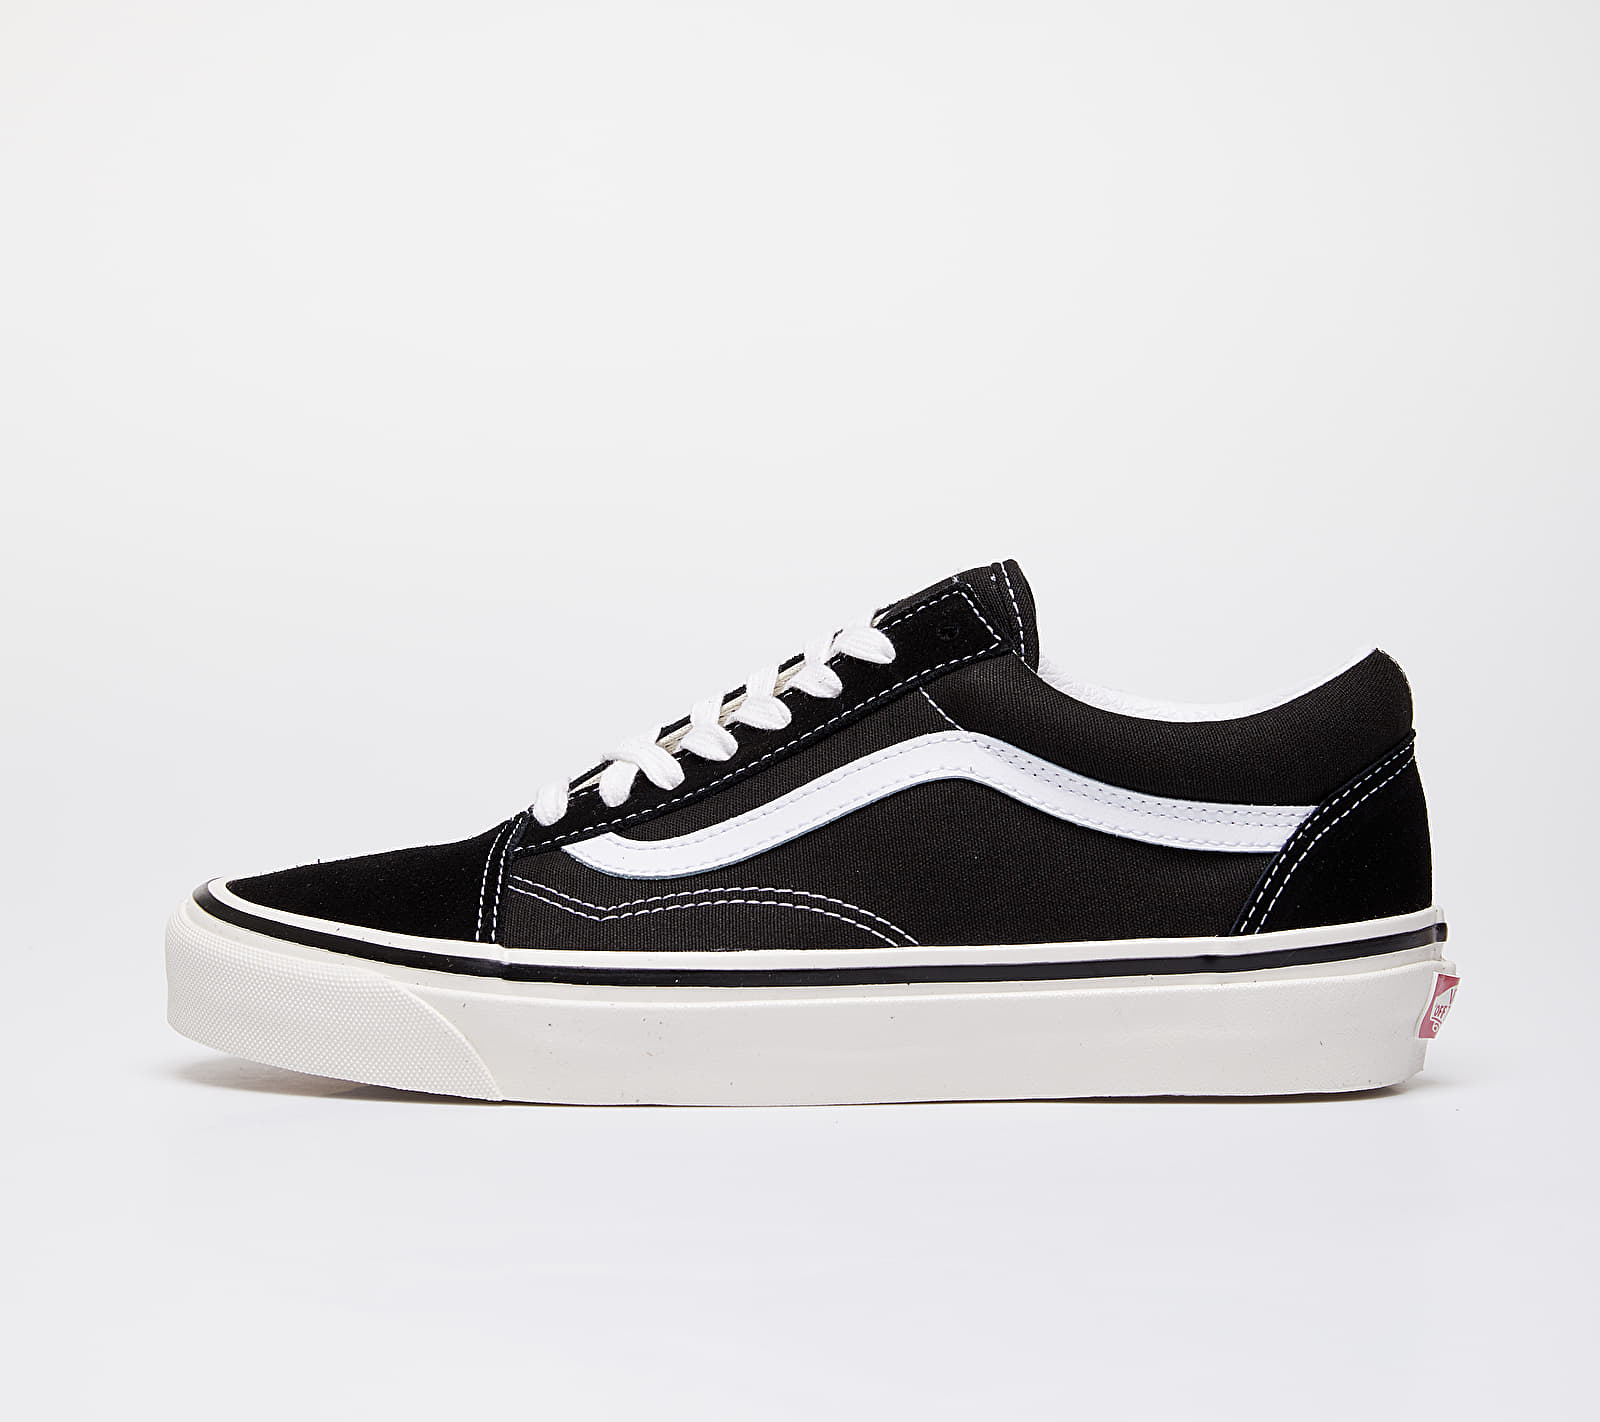 Vans Old Skool 36 DX Black/ True White EUR 42.5